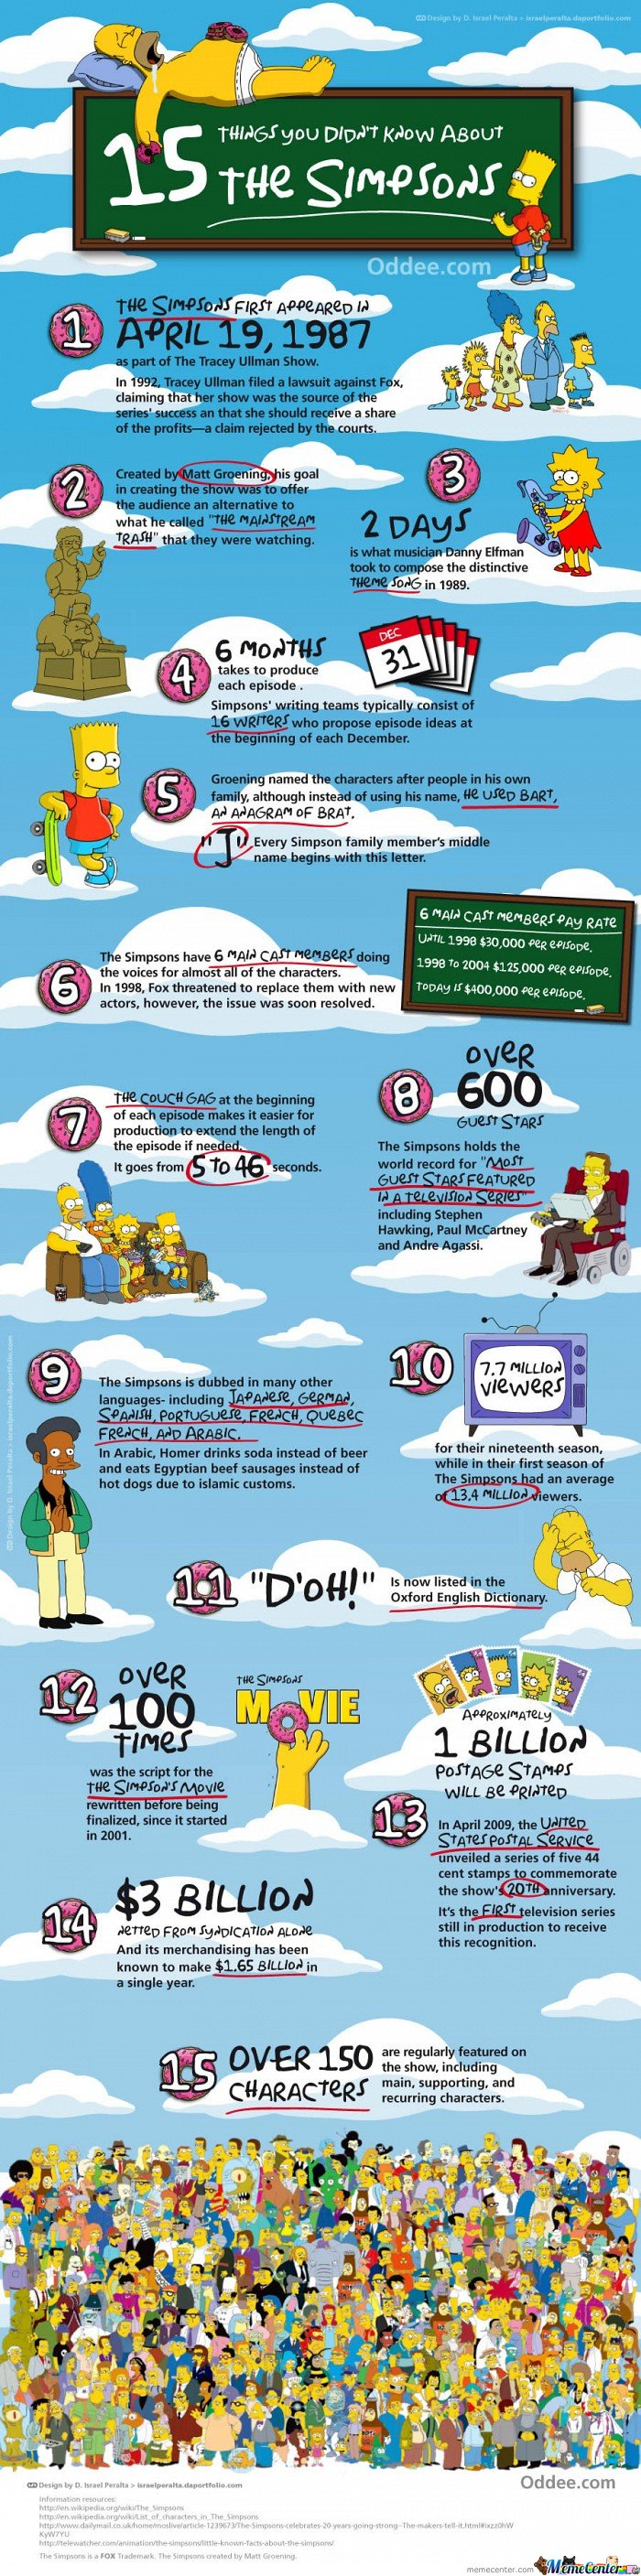 15 Things You Didn't Know About Simpsons